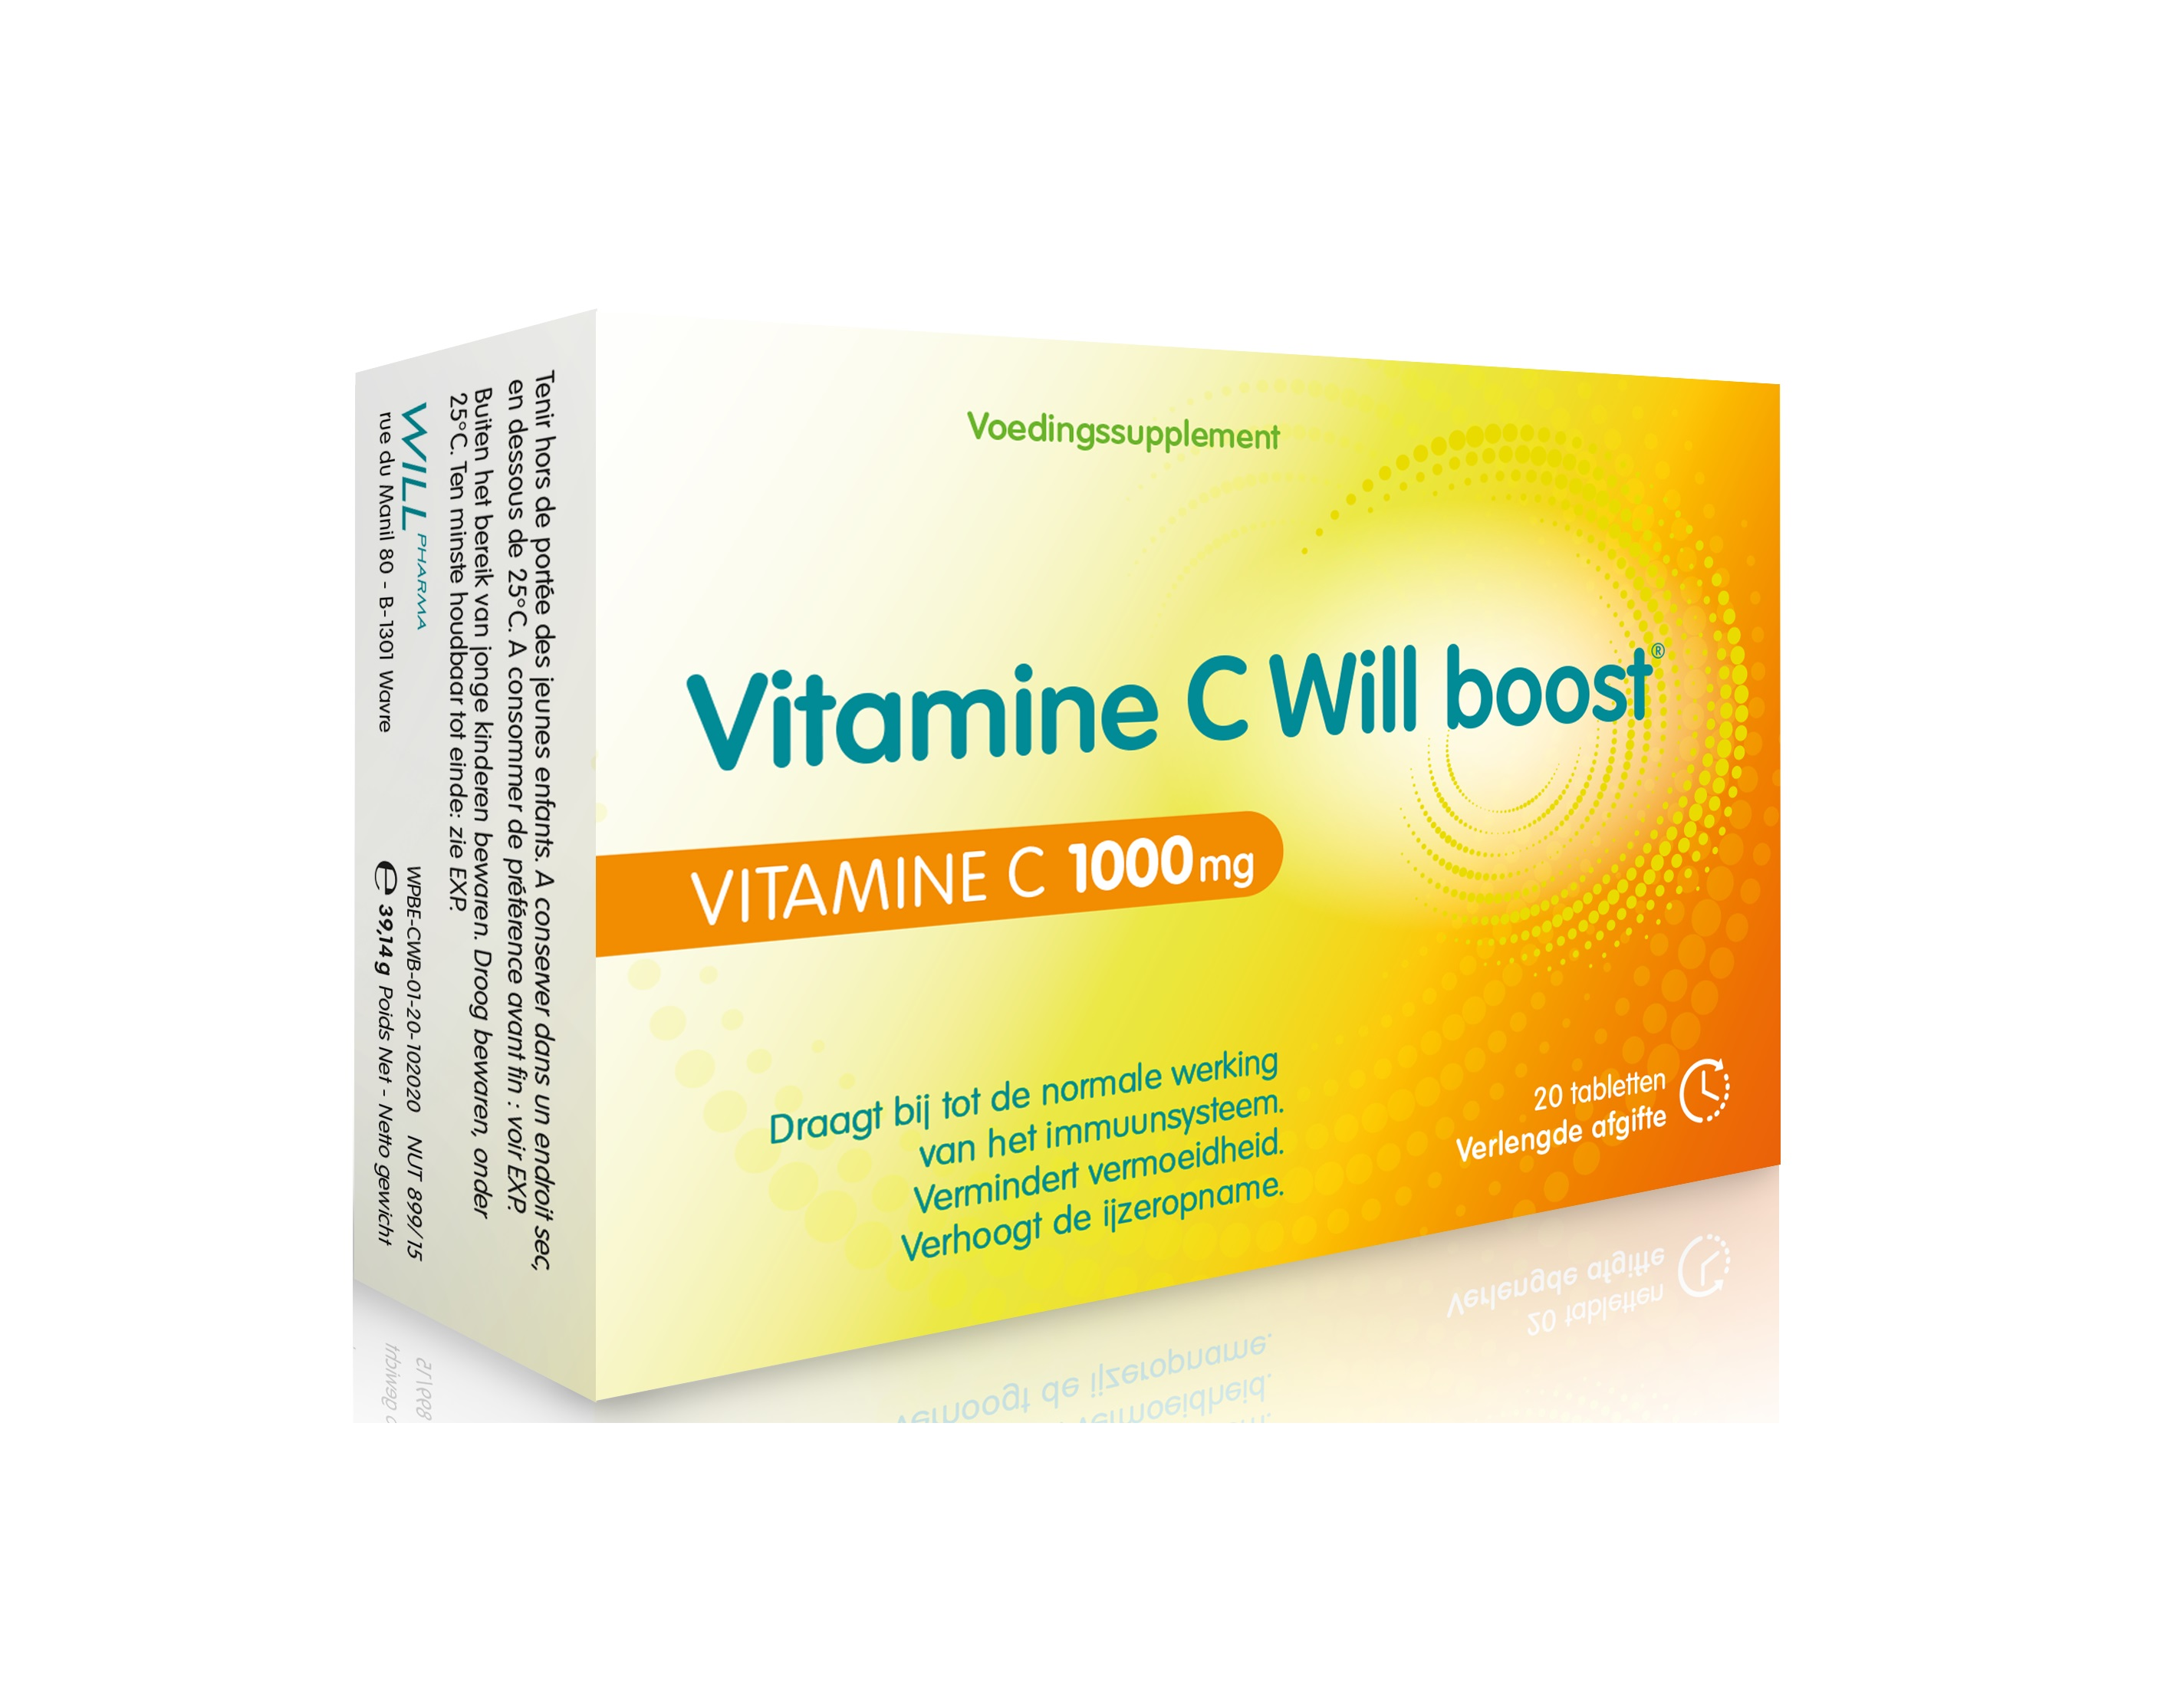 c-will-boost-20-nl.jpg